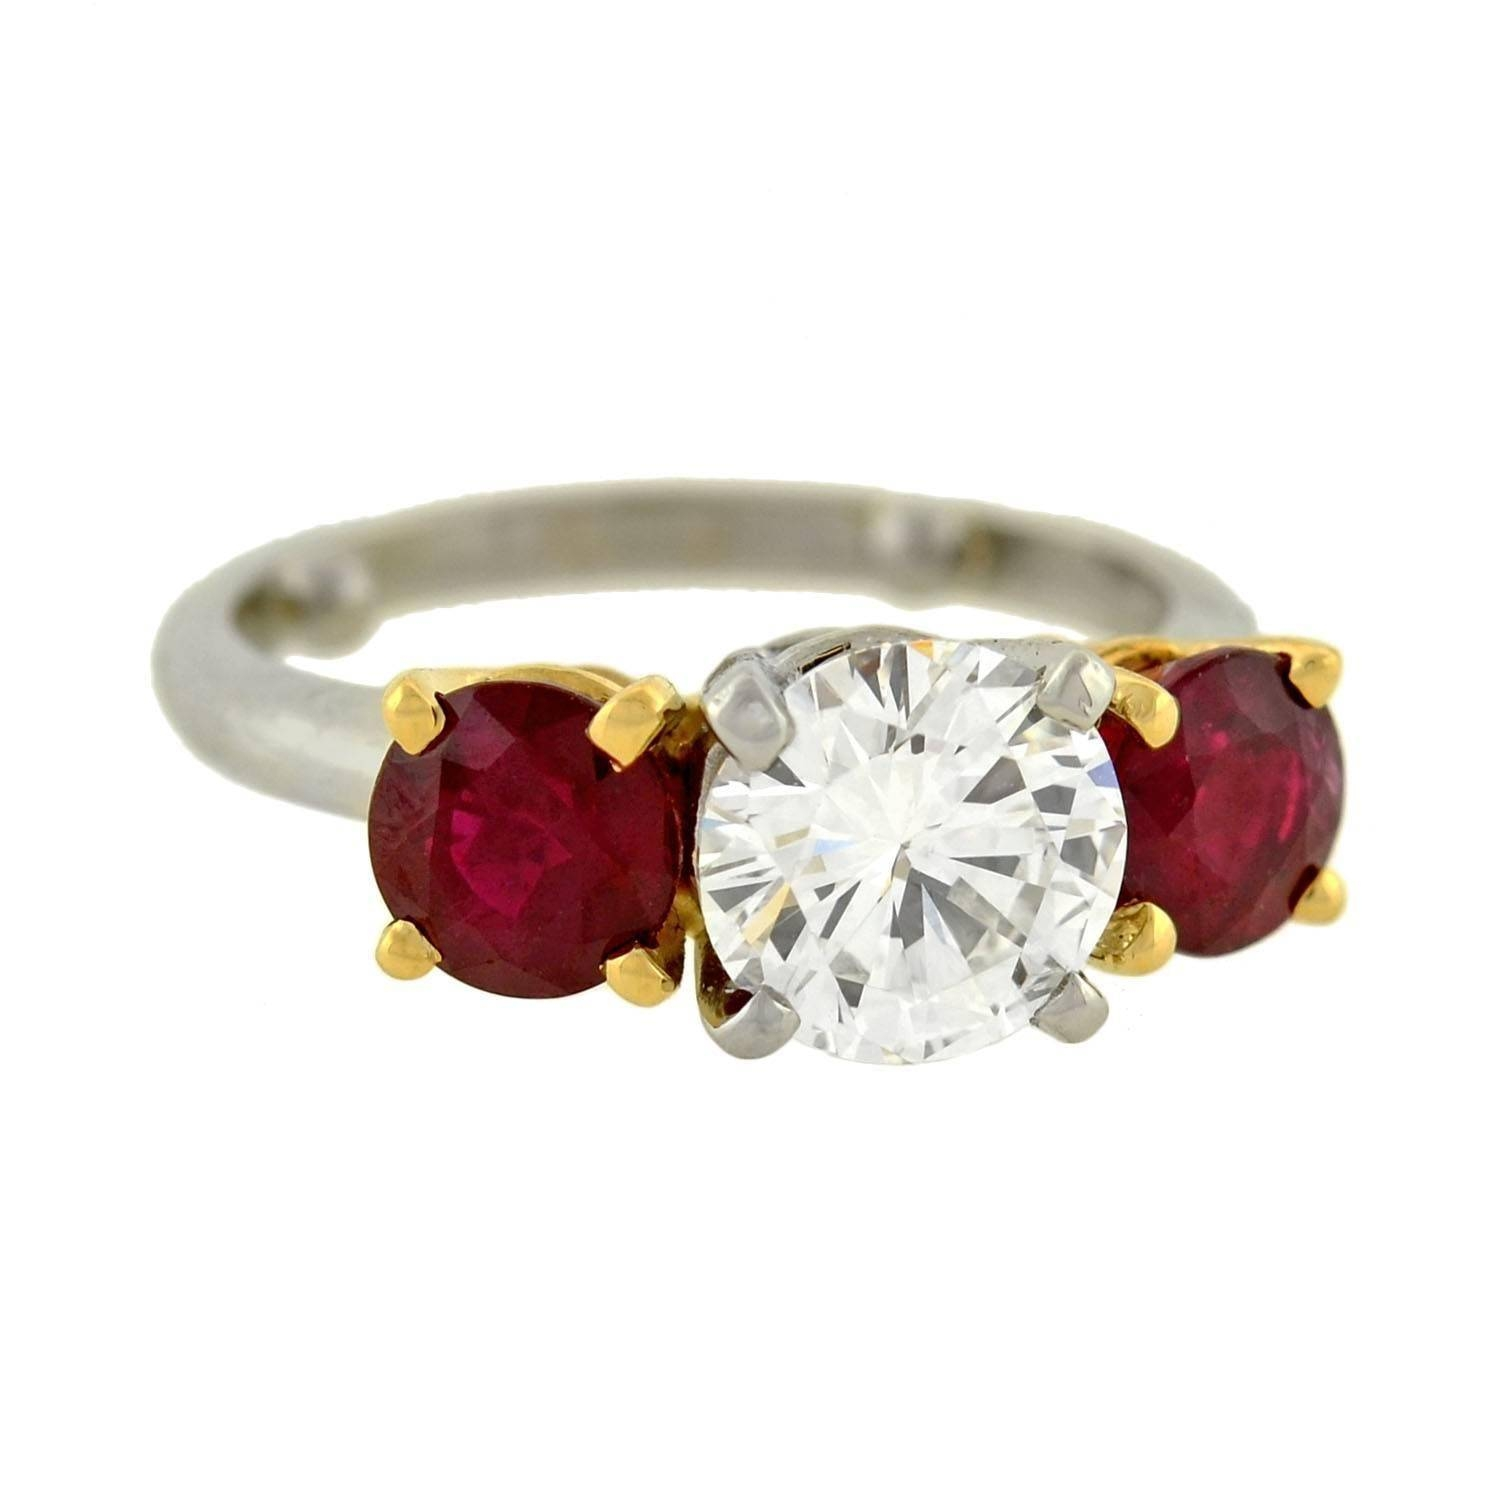 Contemporary Diamond Ruby 3 Stone Engagement Ring For Sale At 1Stdibs With Regard To Engagement Rings With Ruby And Diamond (View 5 of 15)